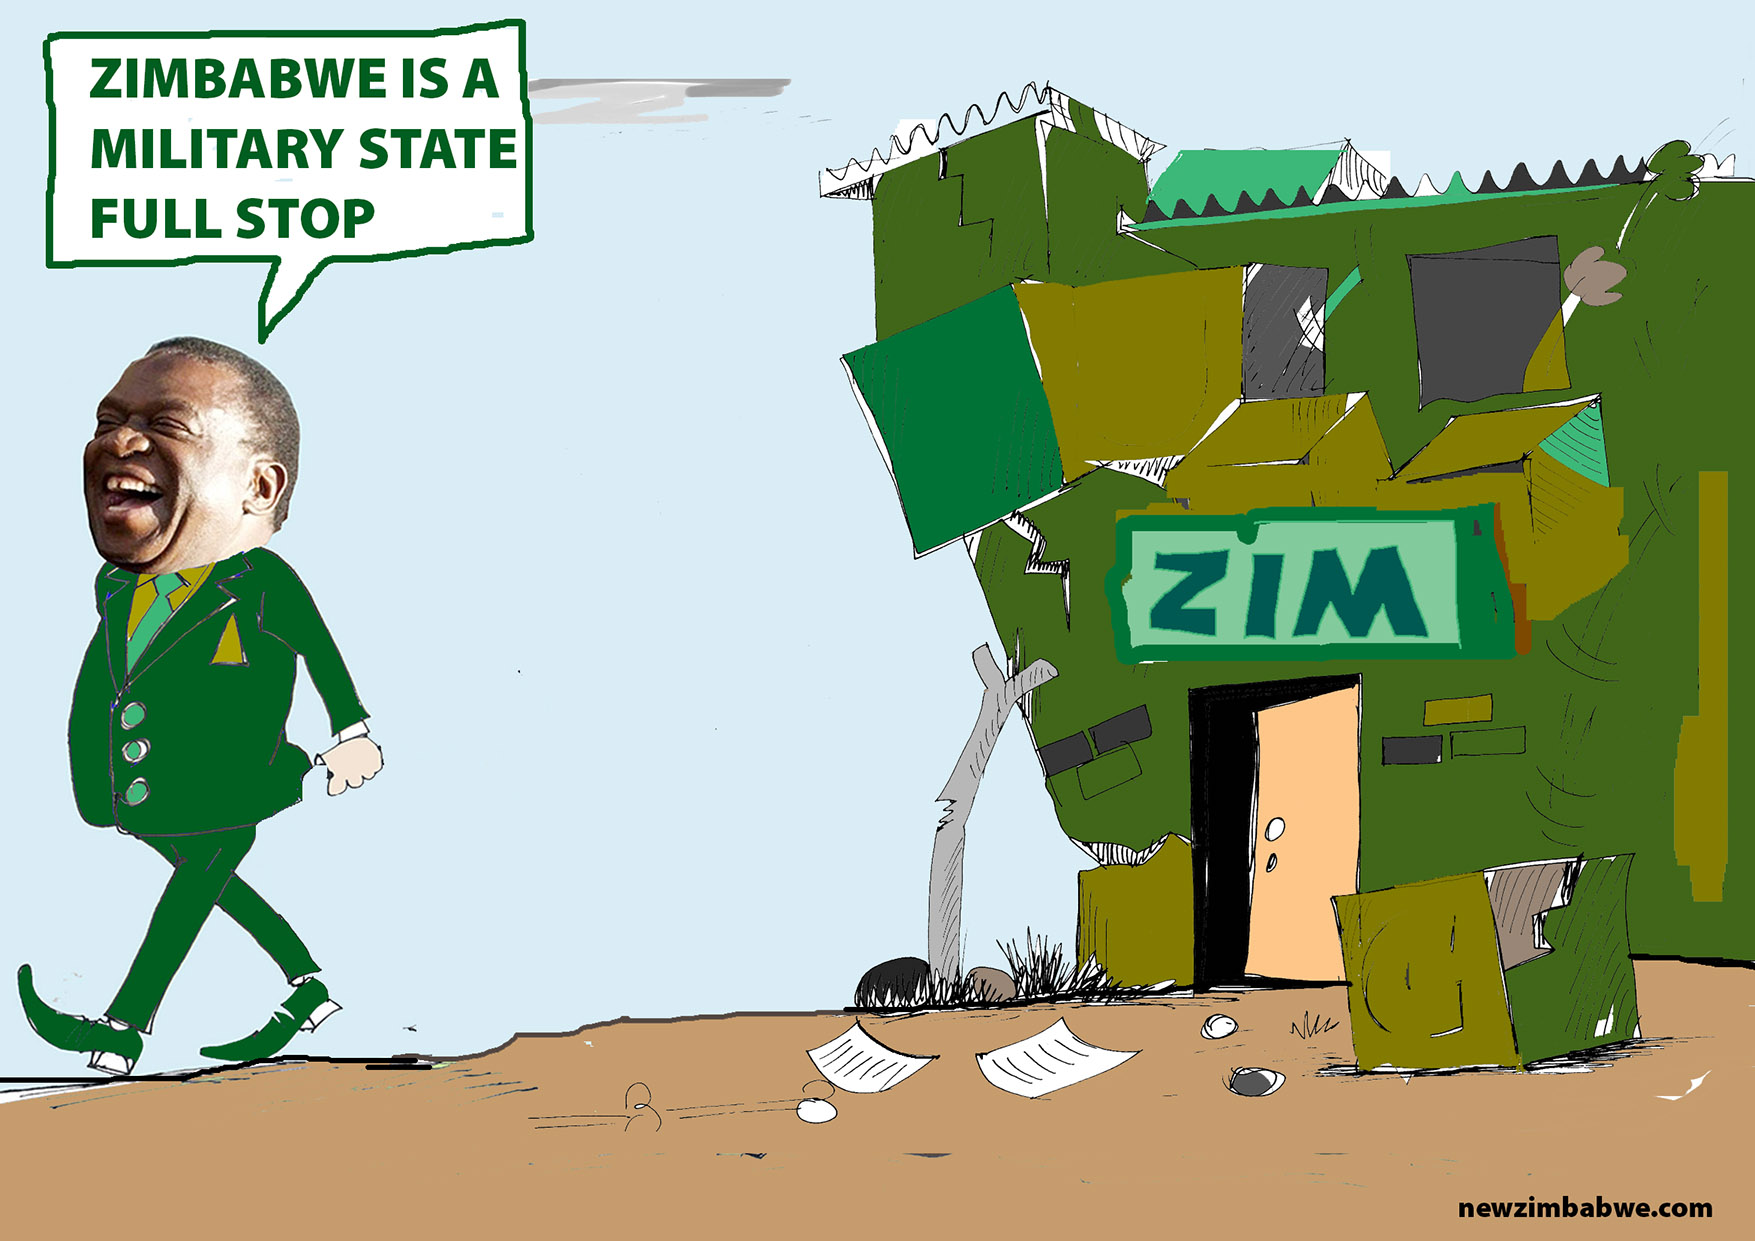 Zim is a military state